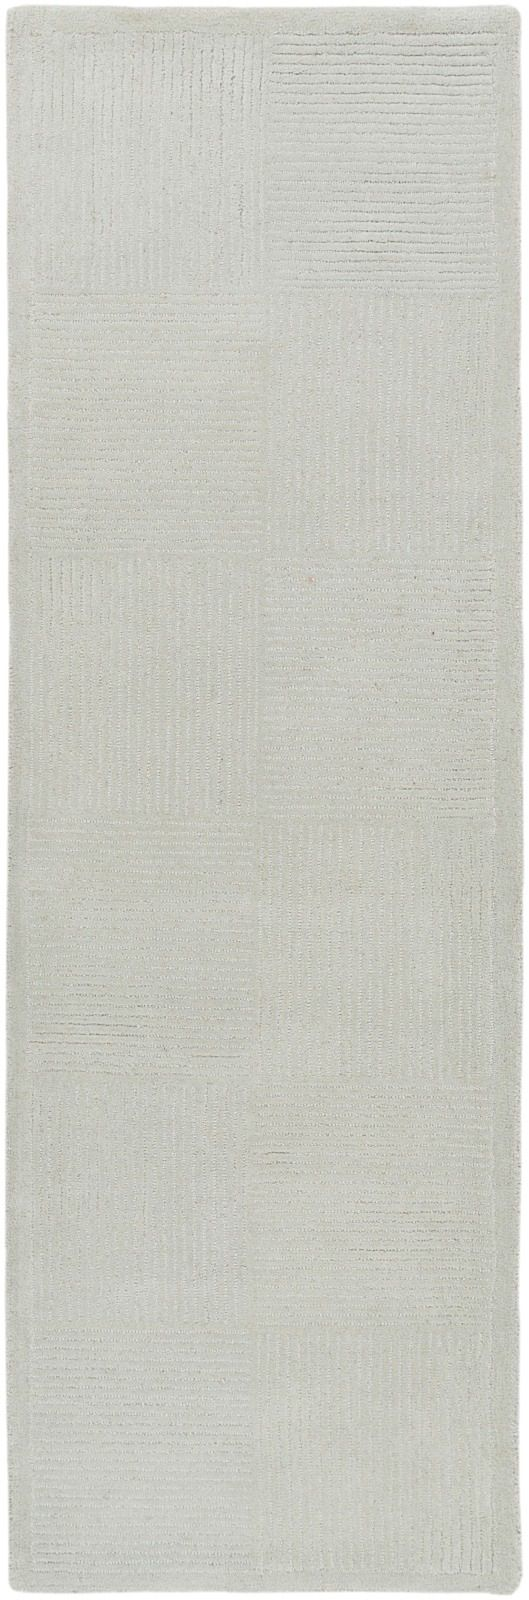 surya penthouse contemporary area rug collection